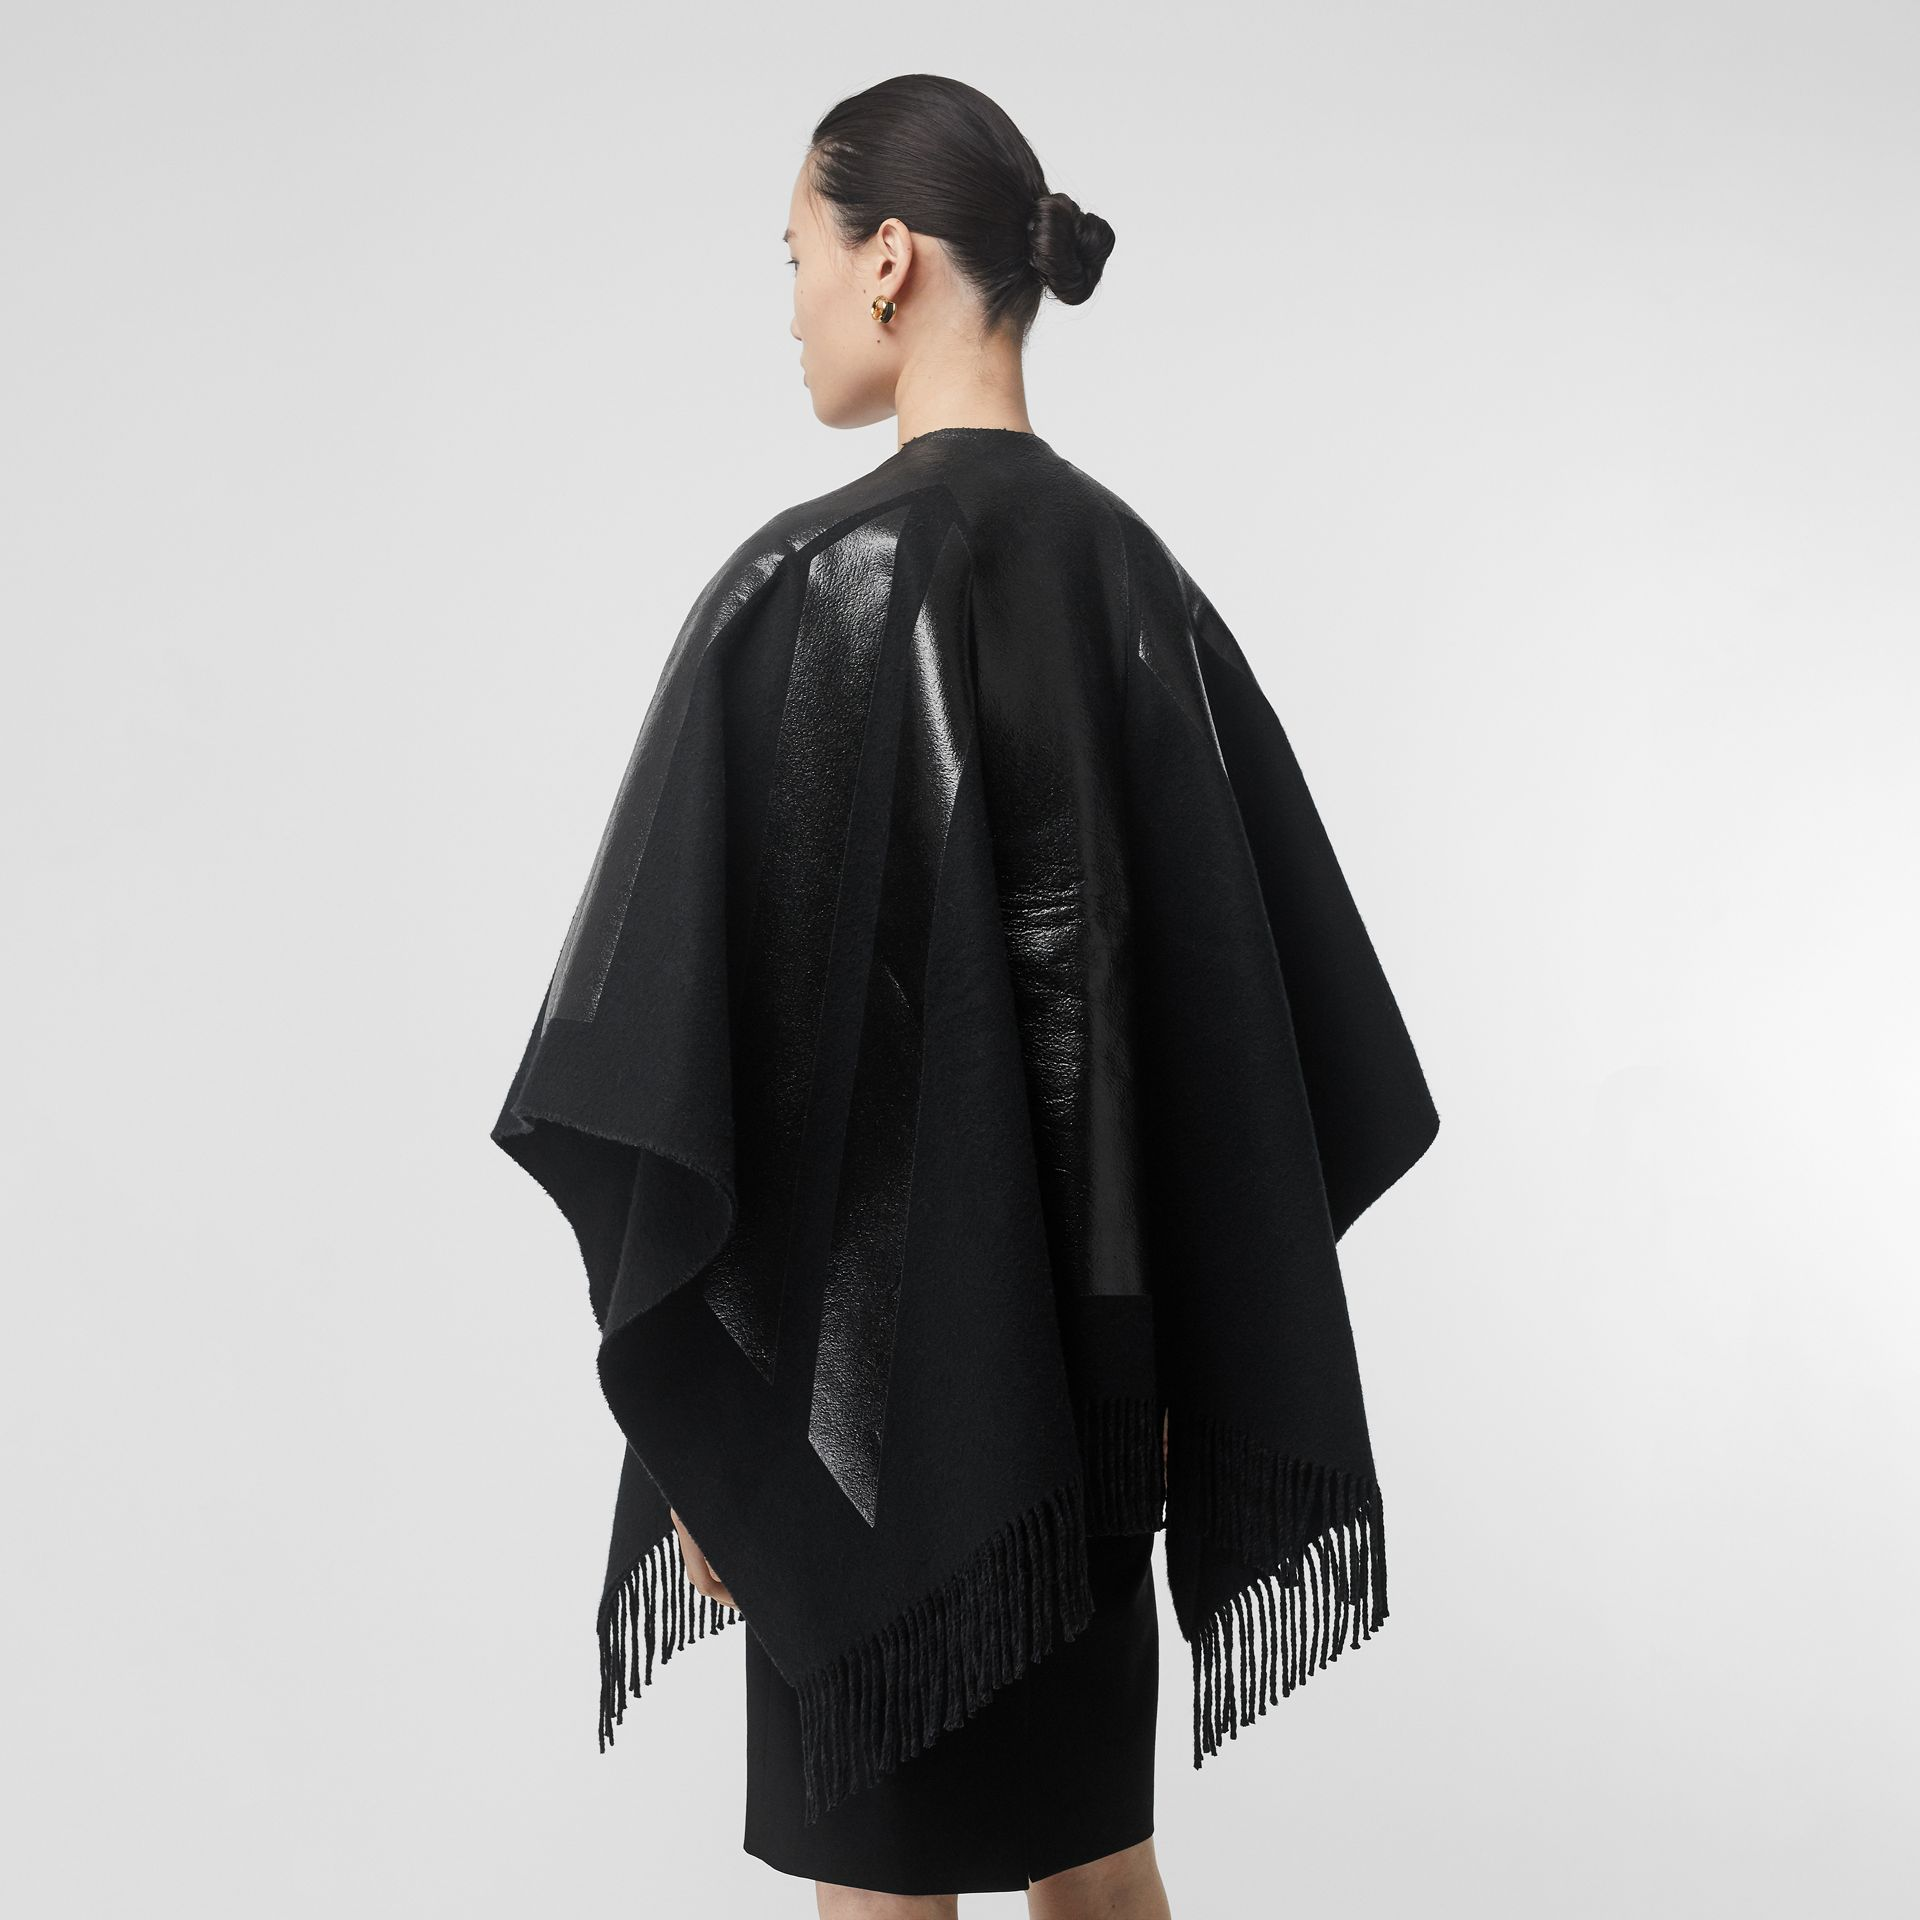 Union Jack Print Wool Cashmere Cape in Black - Women | Burberry Hong Kong - gallery image 2